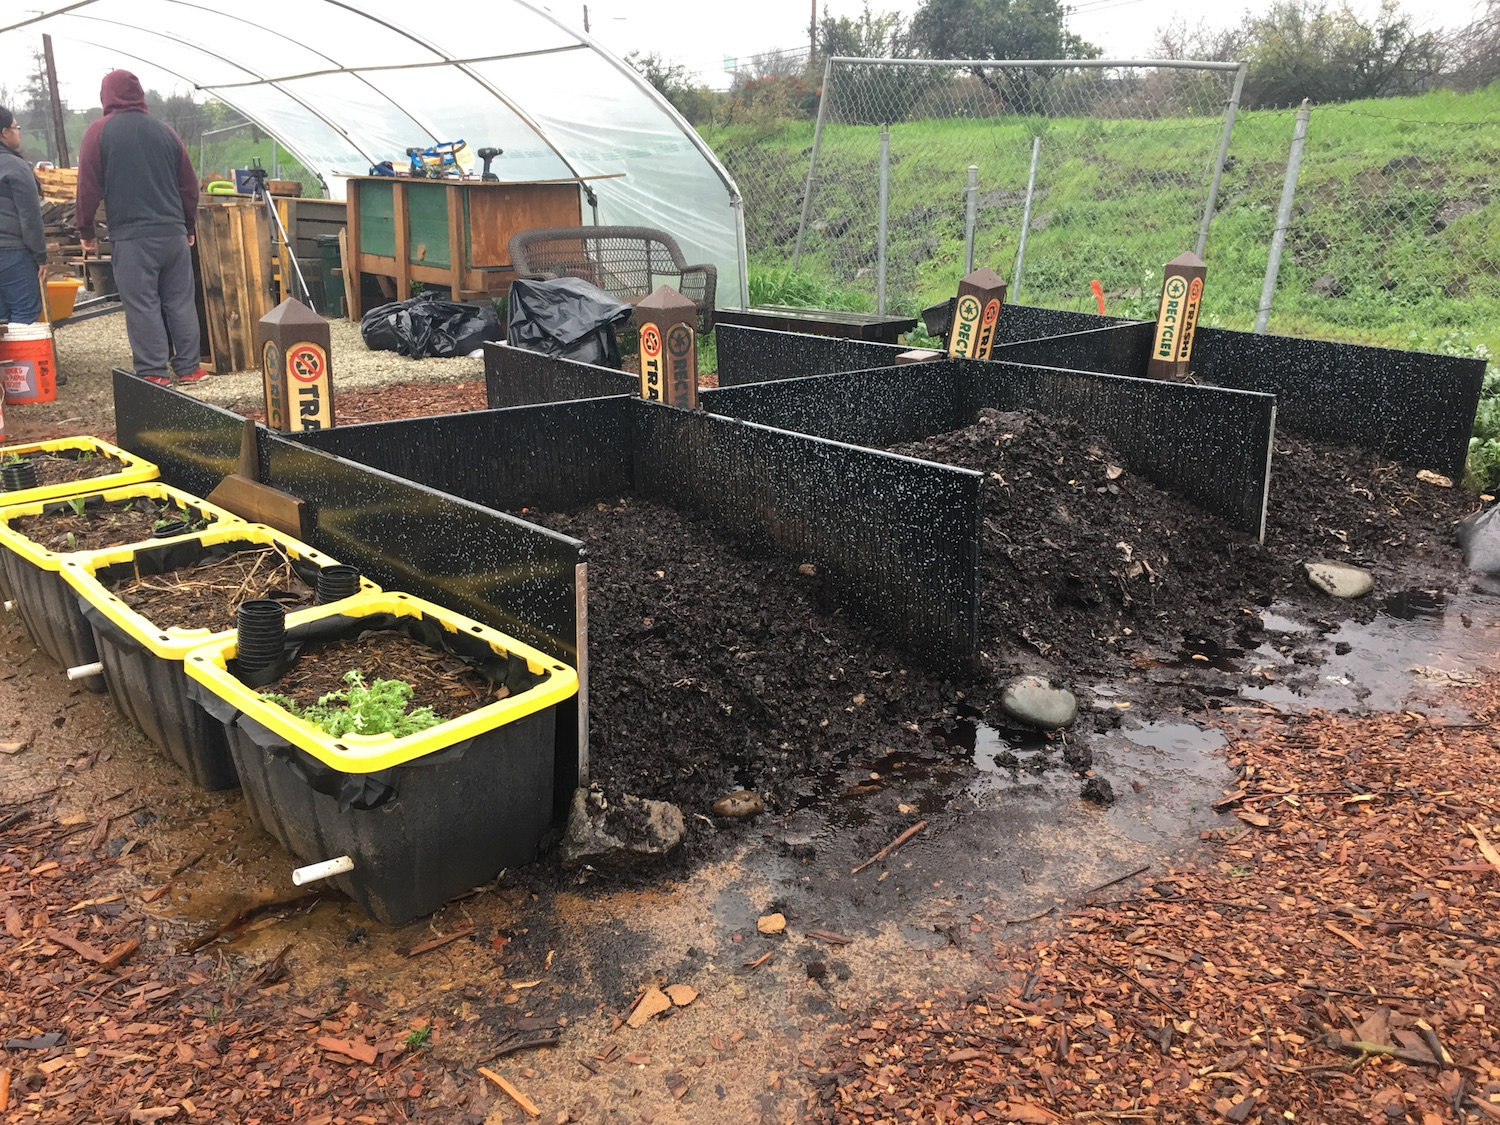 The pilot program started this semester when compost bins were put out to collect food scraps. From there, the scraps are moved to the composting yard at the back of Parking Lot 10. (Photo by Raul Hernandez)